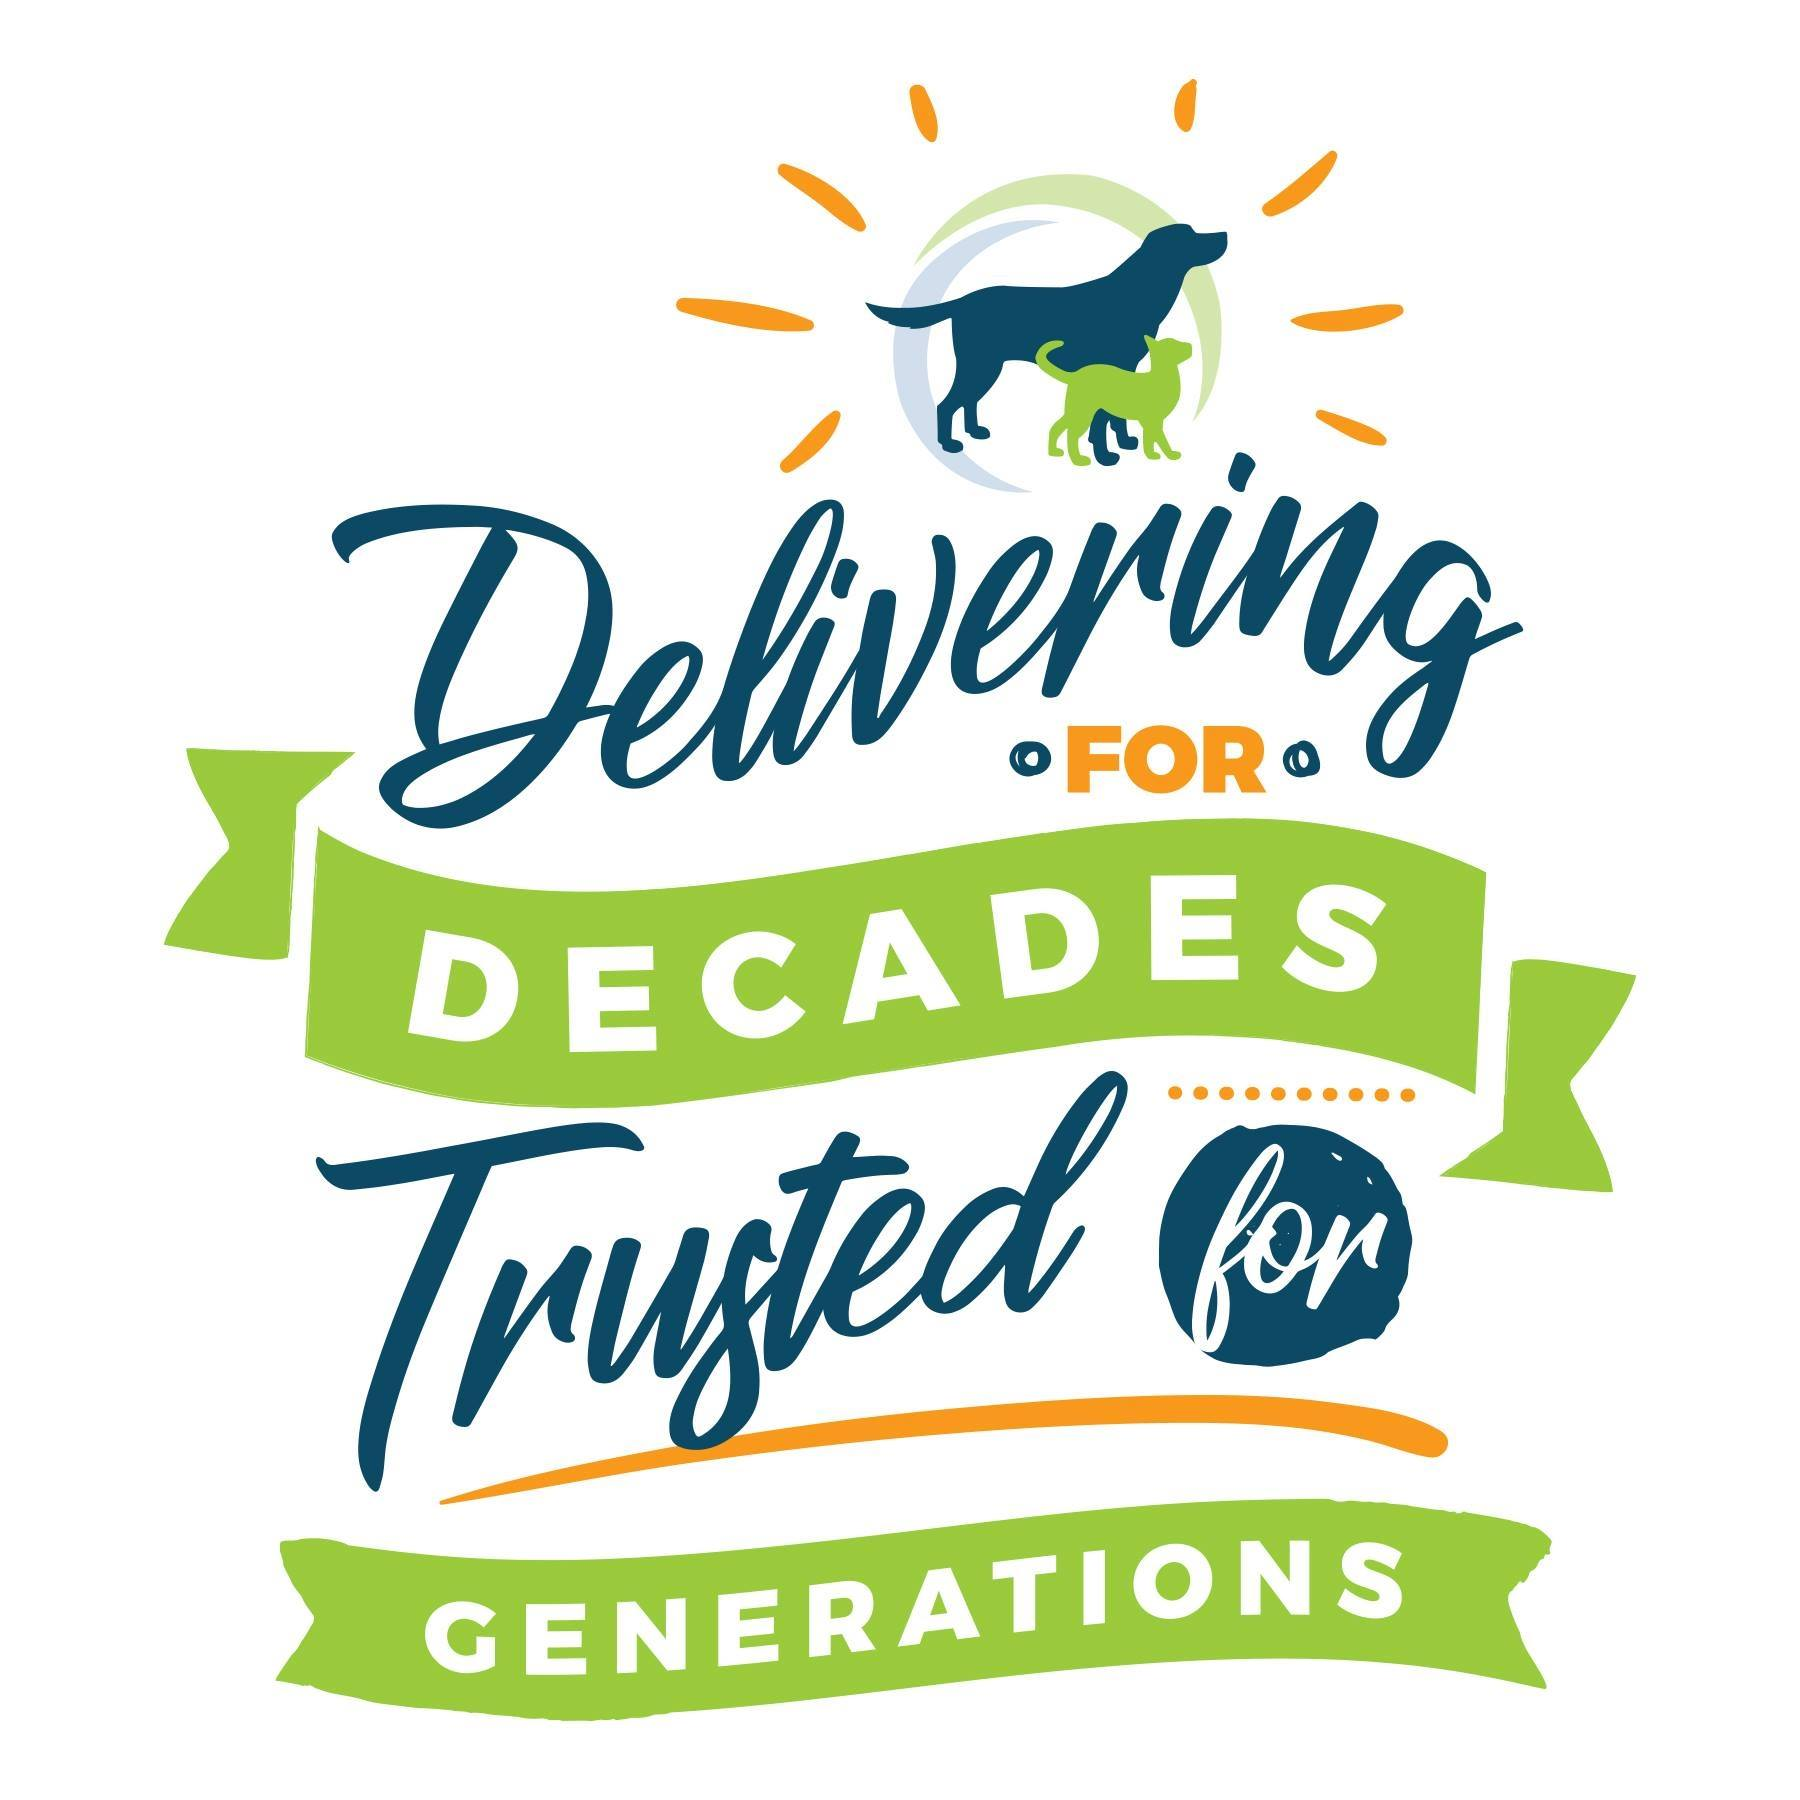 Delivering for Decades, Trusted for Generations